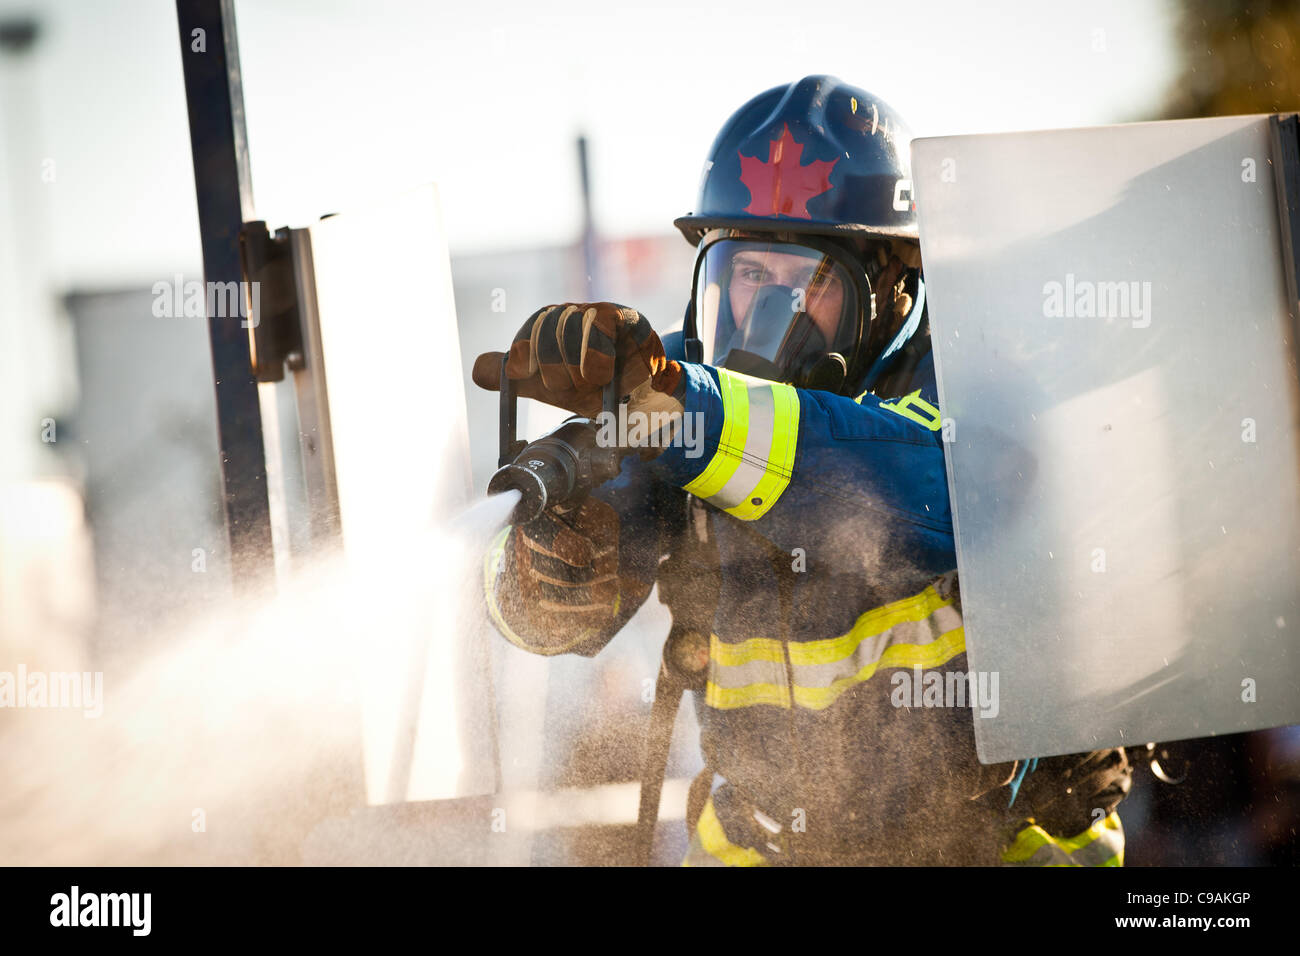 A firefighter from Canada aims a firehose at a target while wearing full firefighting gear and working against the - Stock Image